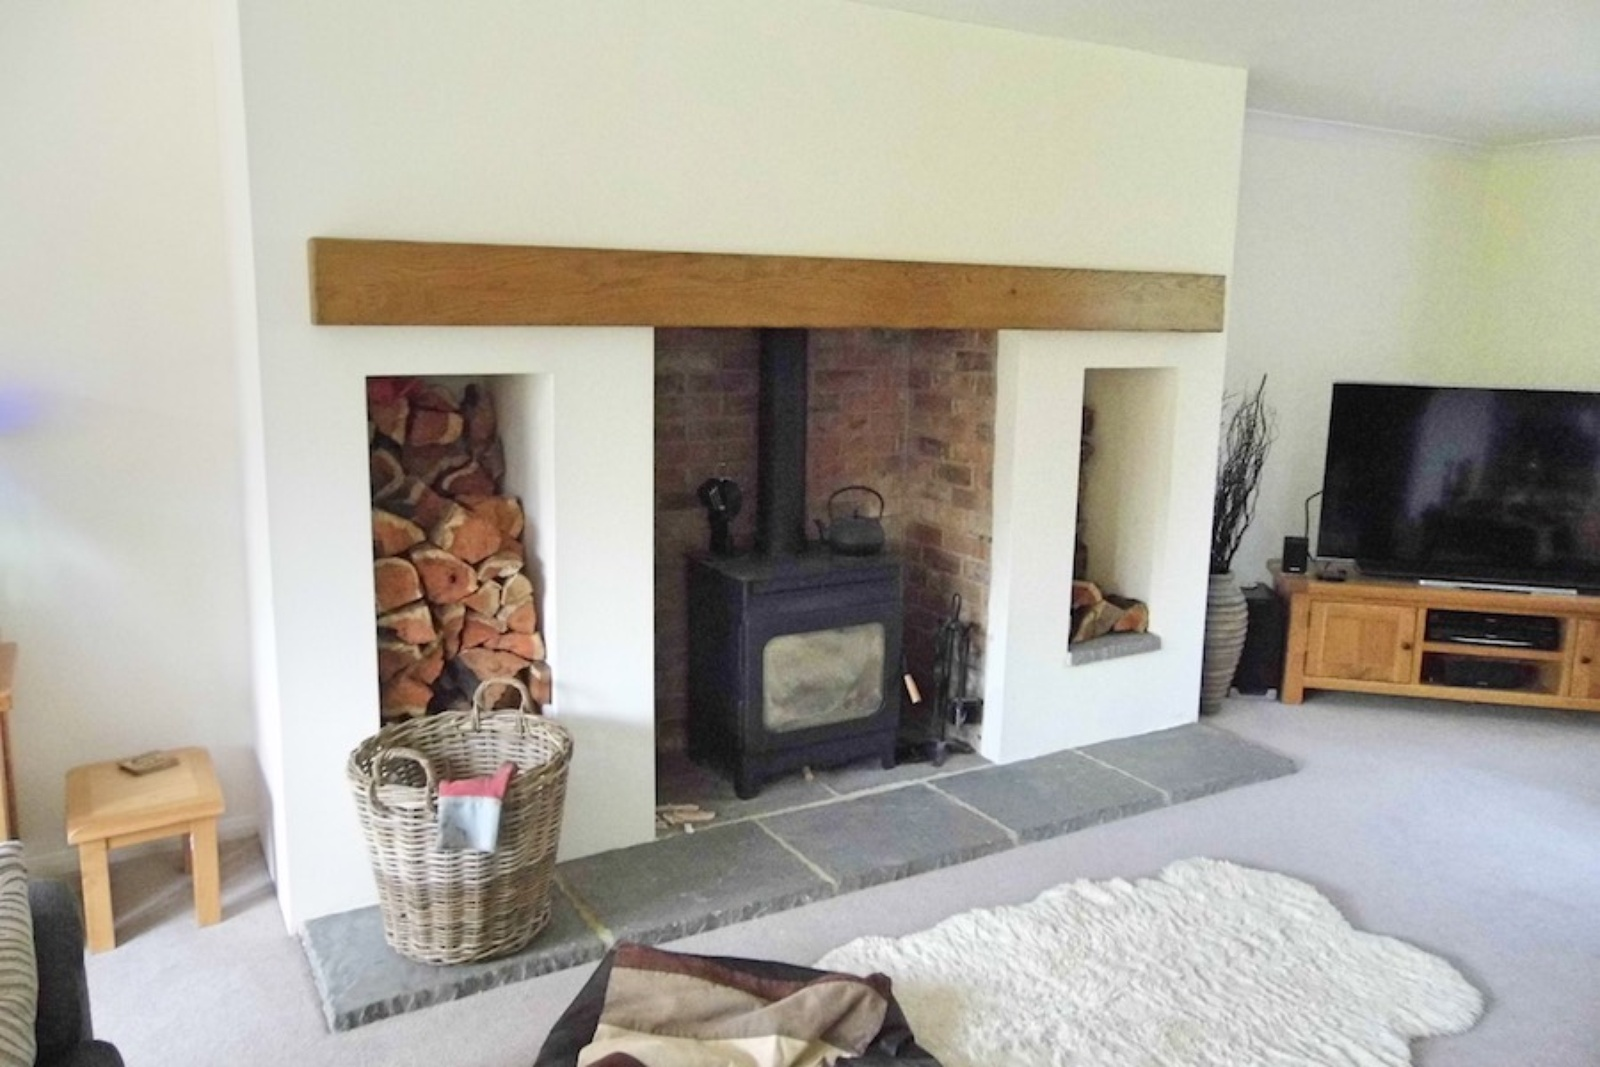 A delicate colour choice and a warm wood finish to the inglenook beam creates a fresh modern feel to a new faux fireplace.